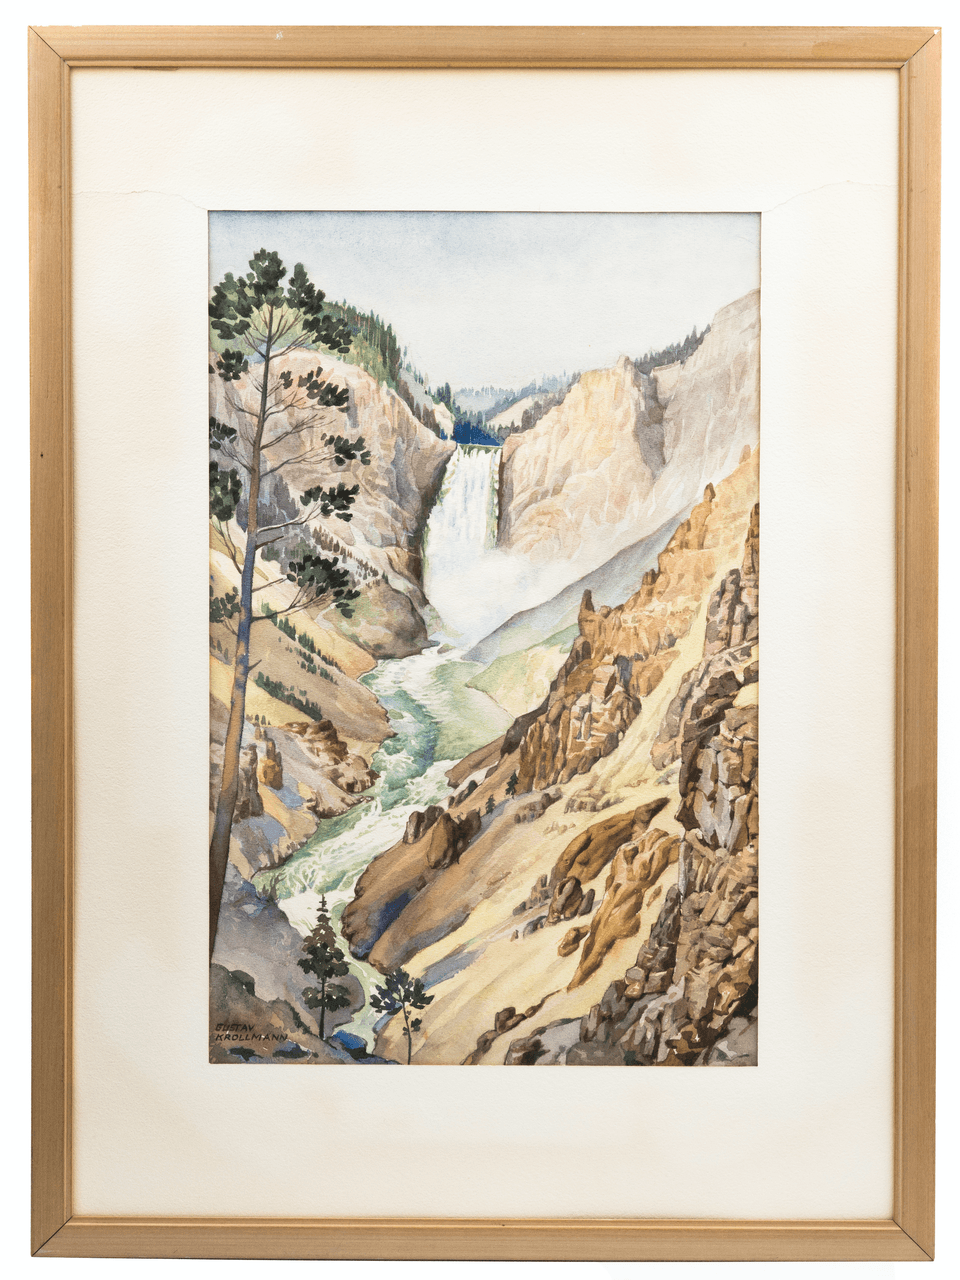 An Original Signed Watercolor By Gustav Krollman 1888-1962